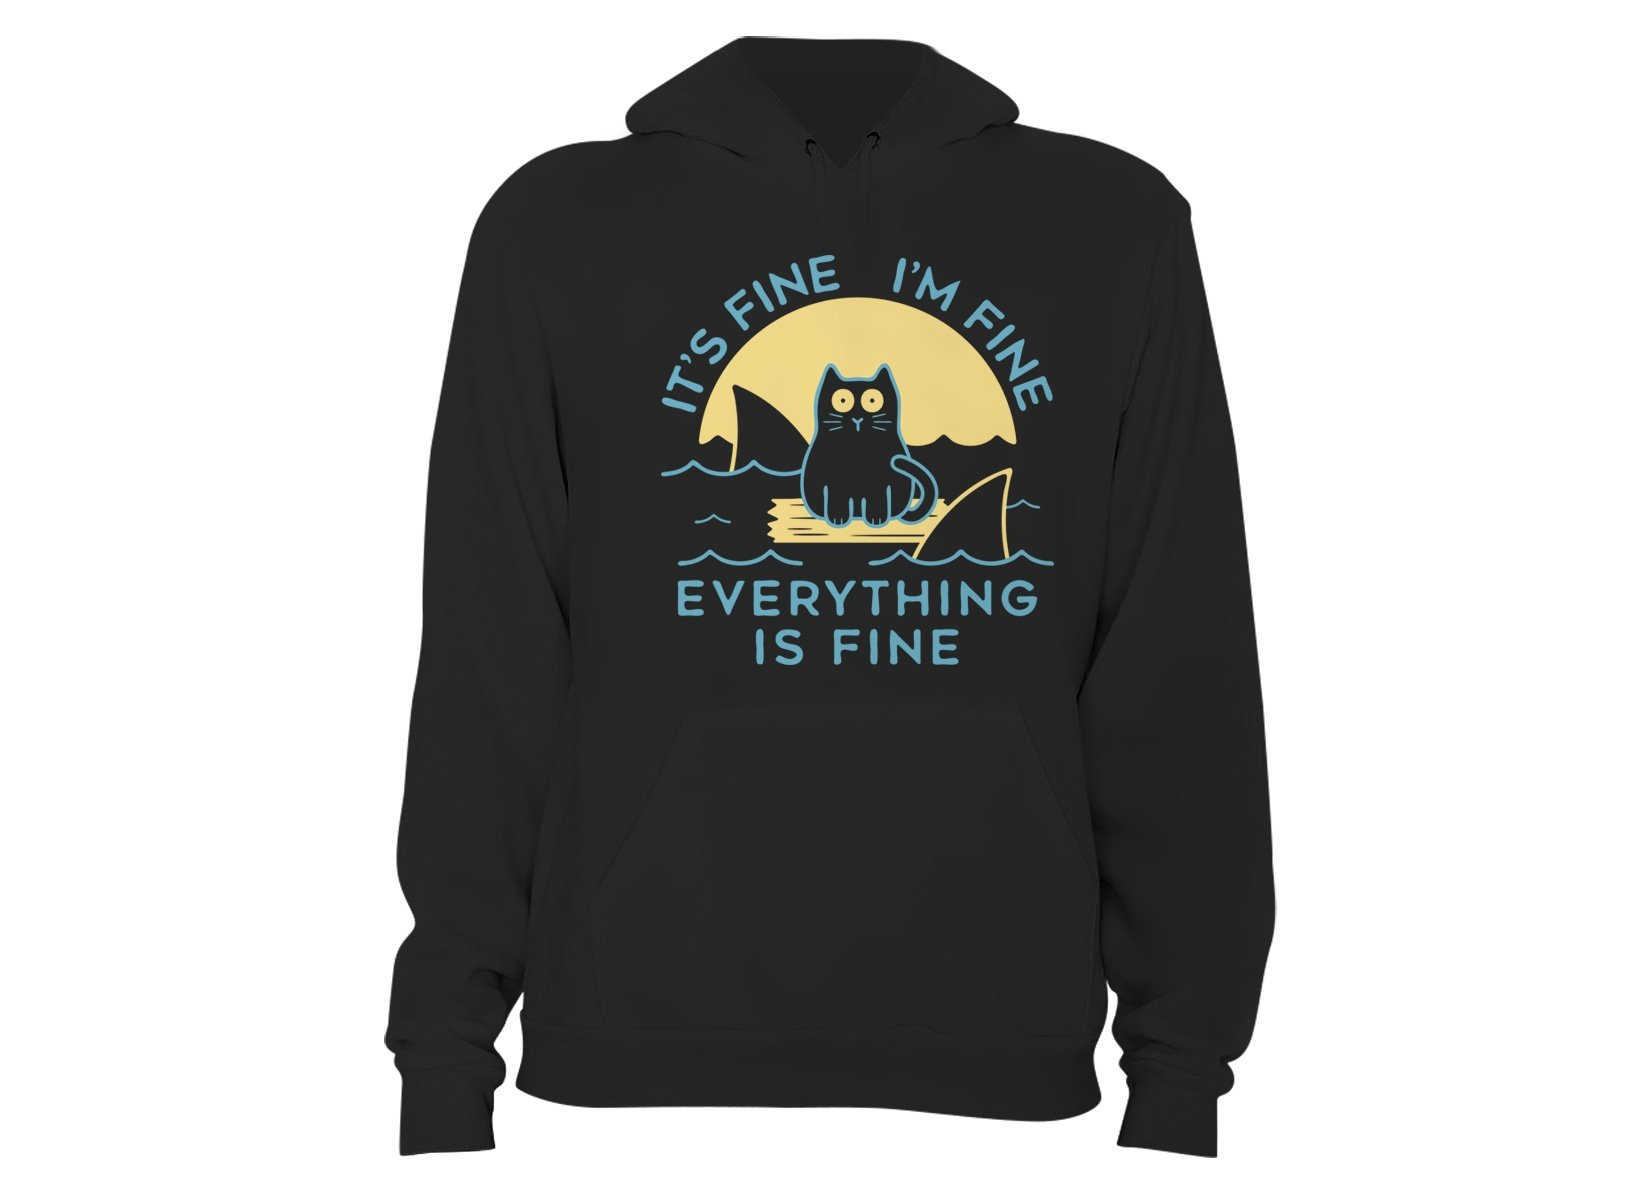 It's Fine I'm Fine Everything Is Fine on Hoodie